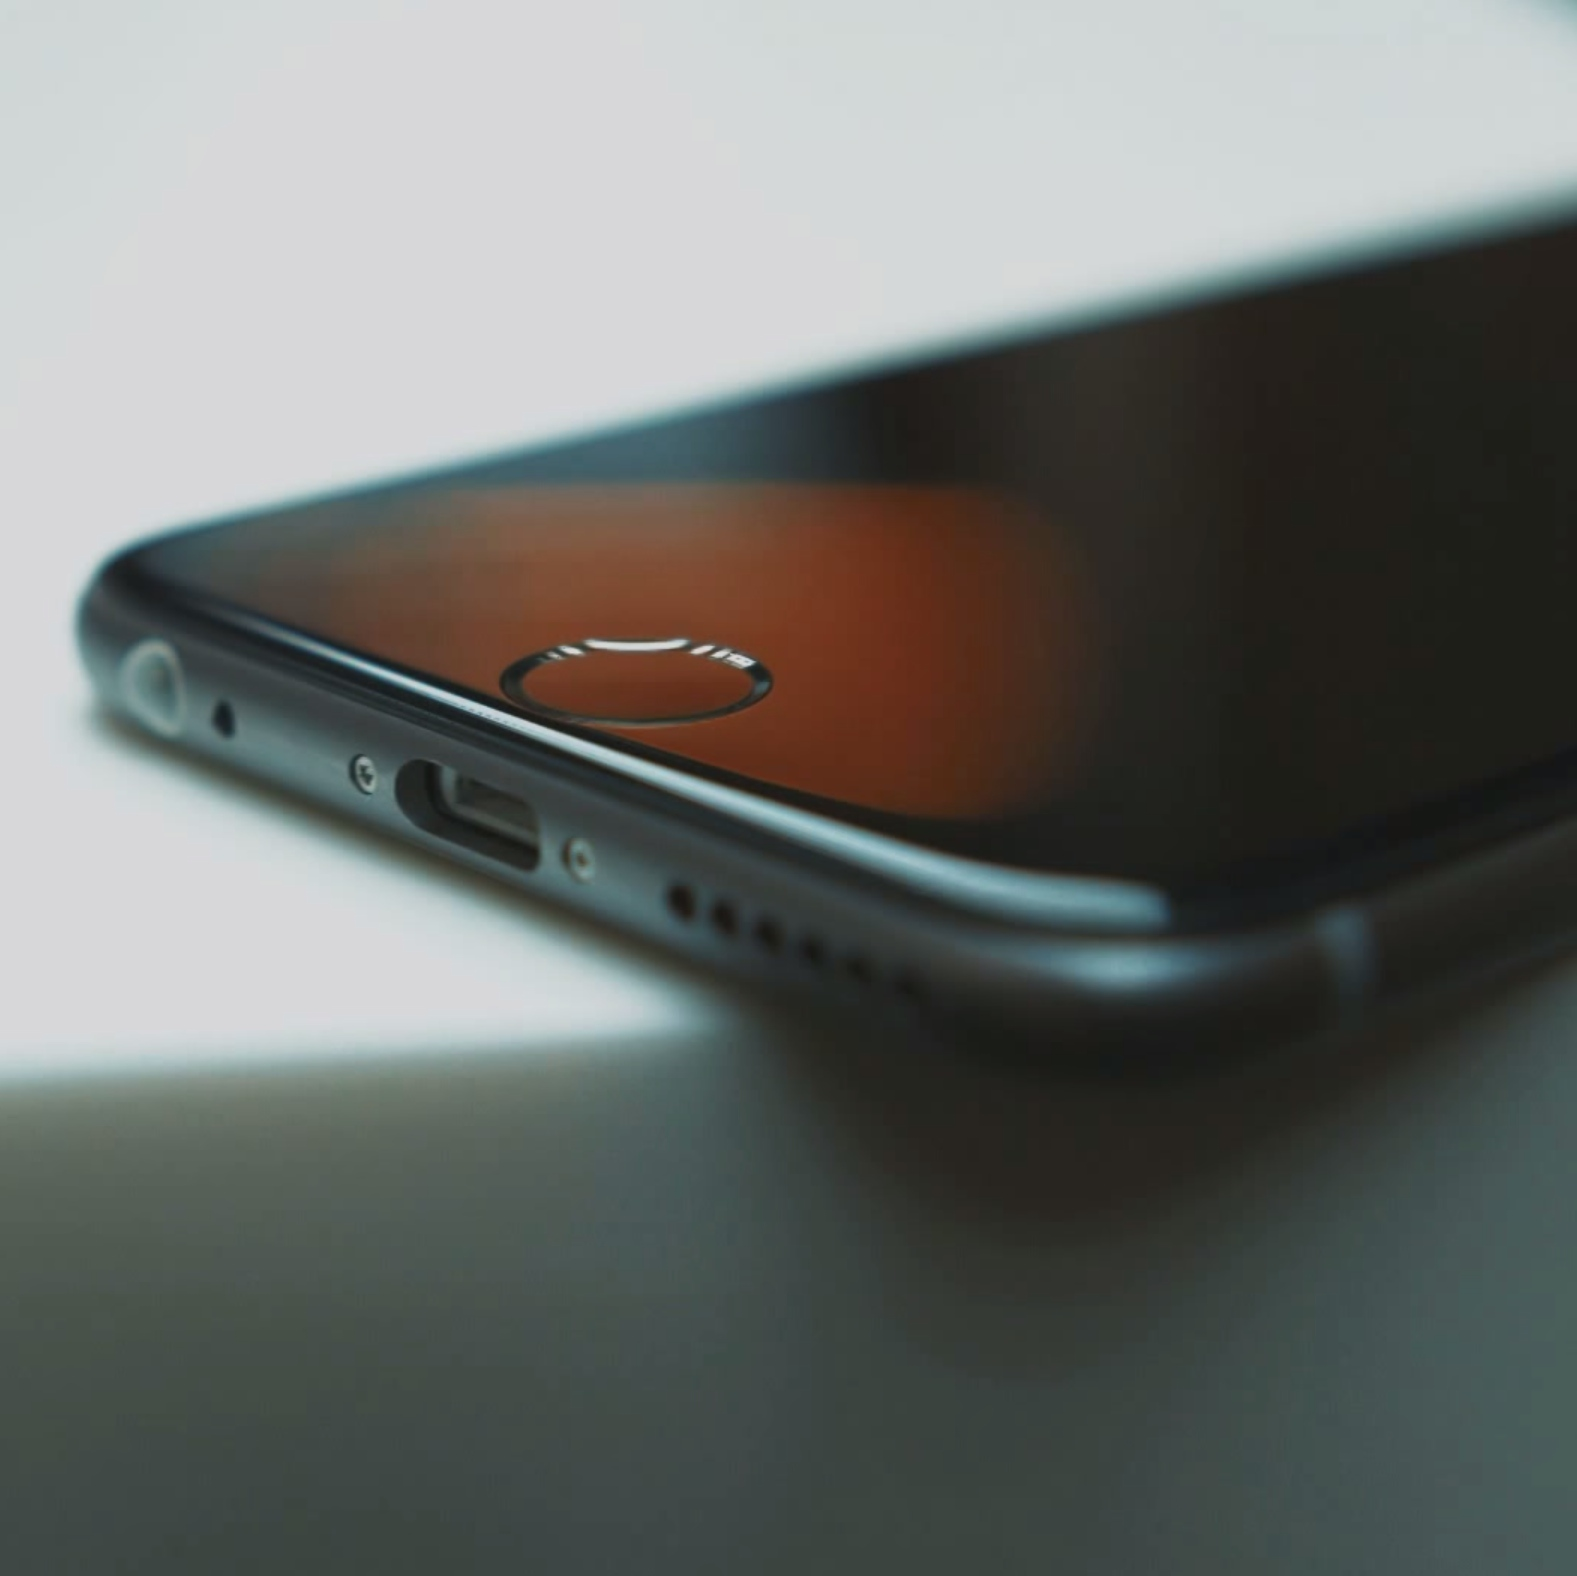 Bigger screen, new design, better battery - the iPhone 6 rumour round-up